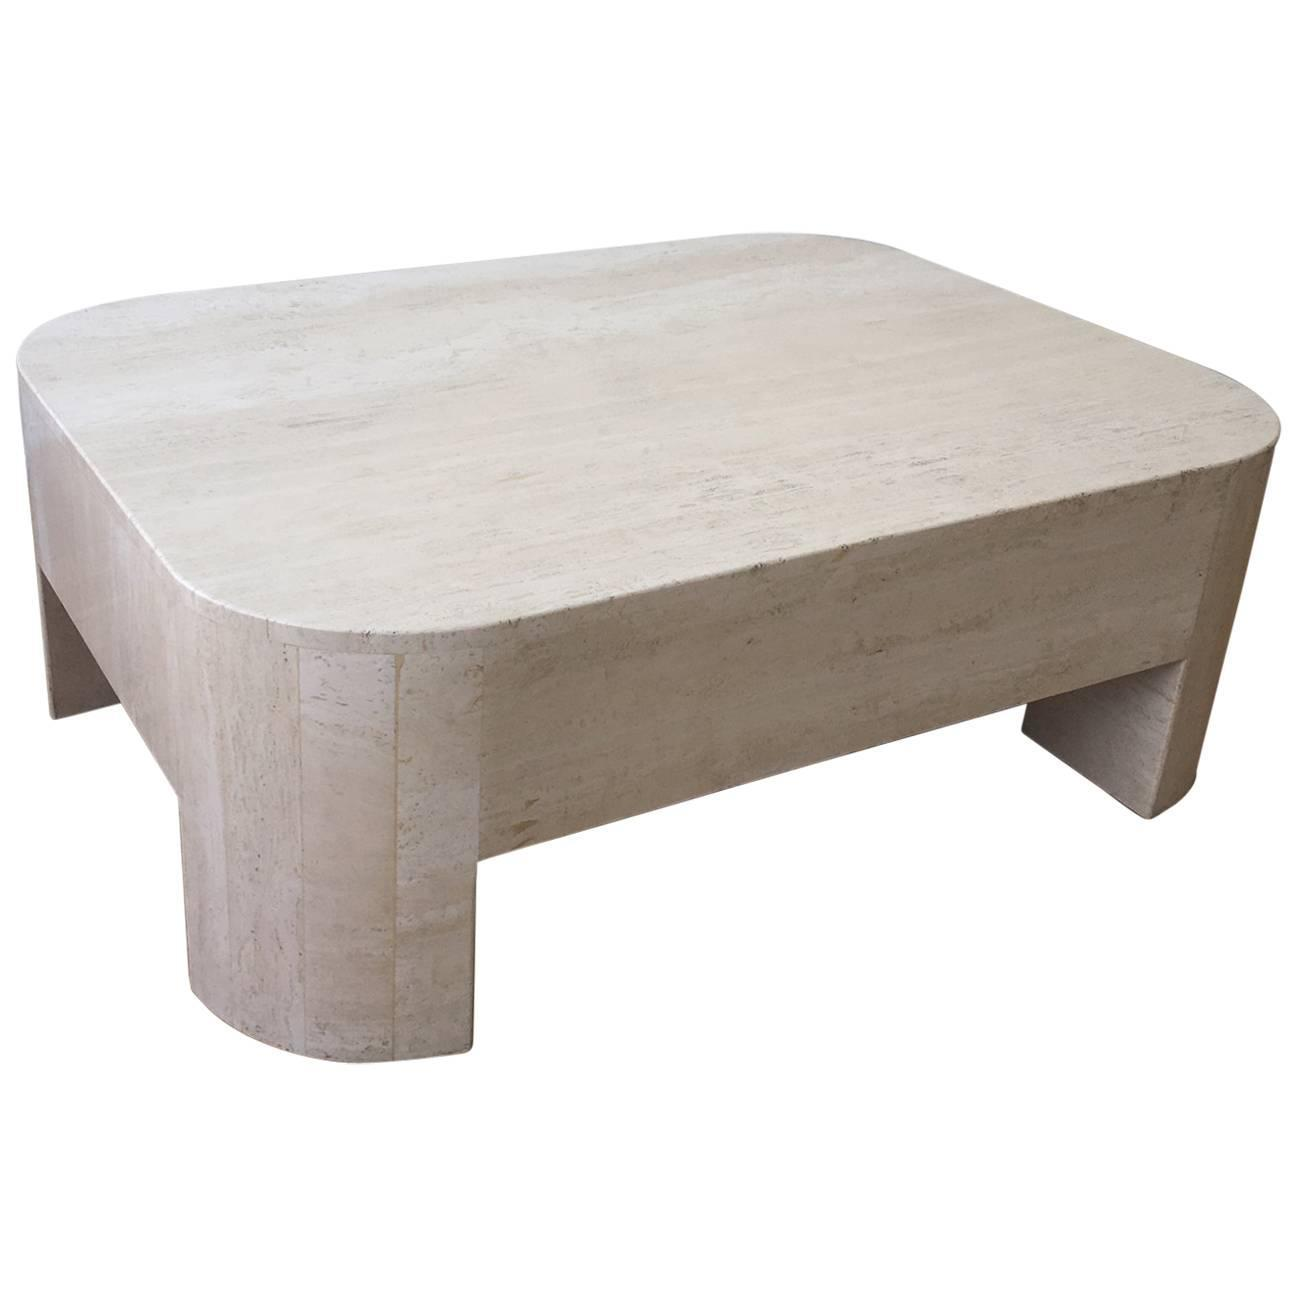 Solid Travertine Coffee Table: Polished Italian Travertine Cocktail Table For Sale At 1stdibs